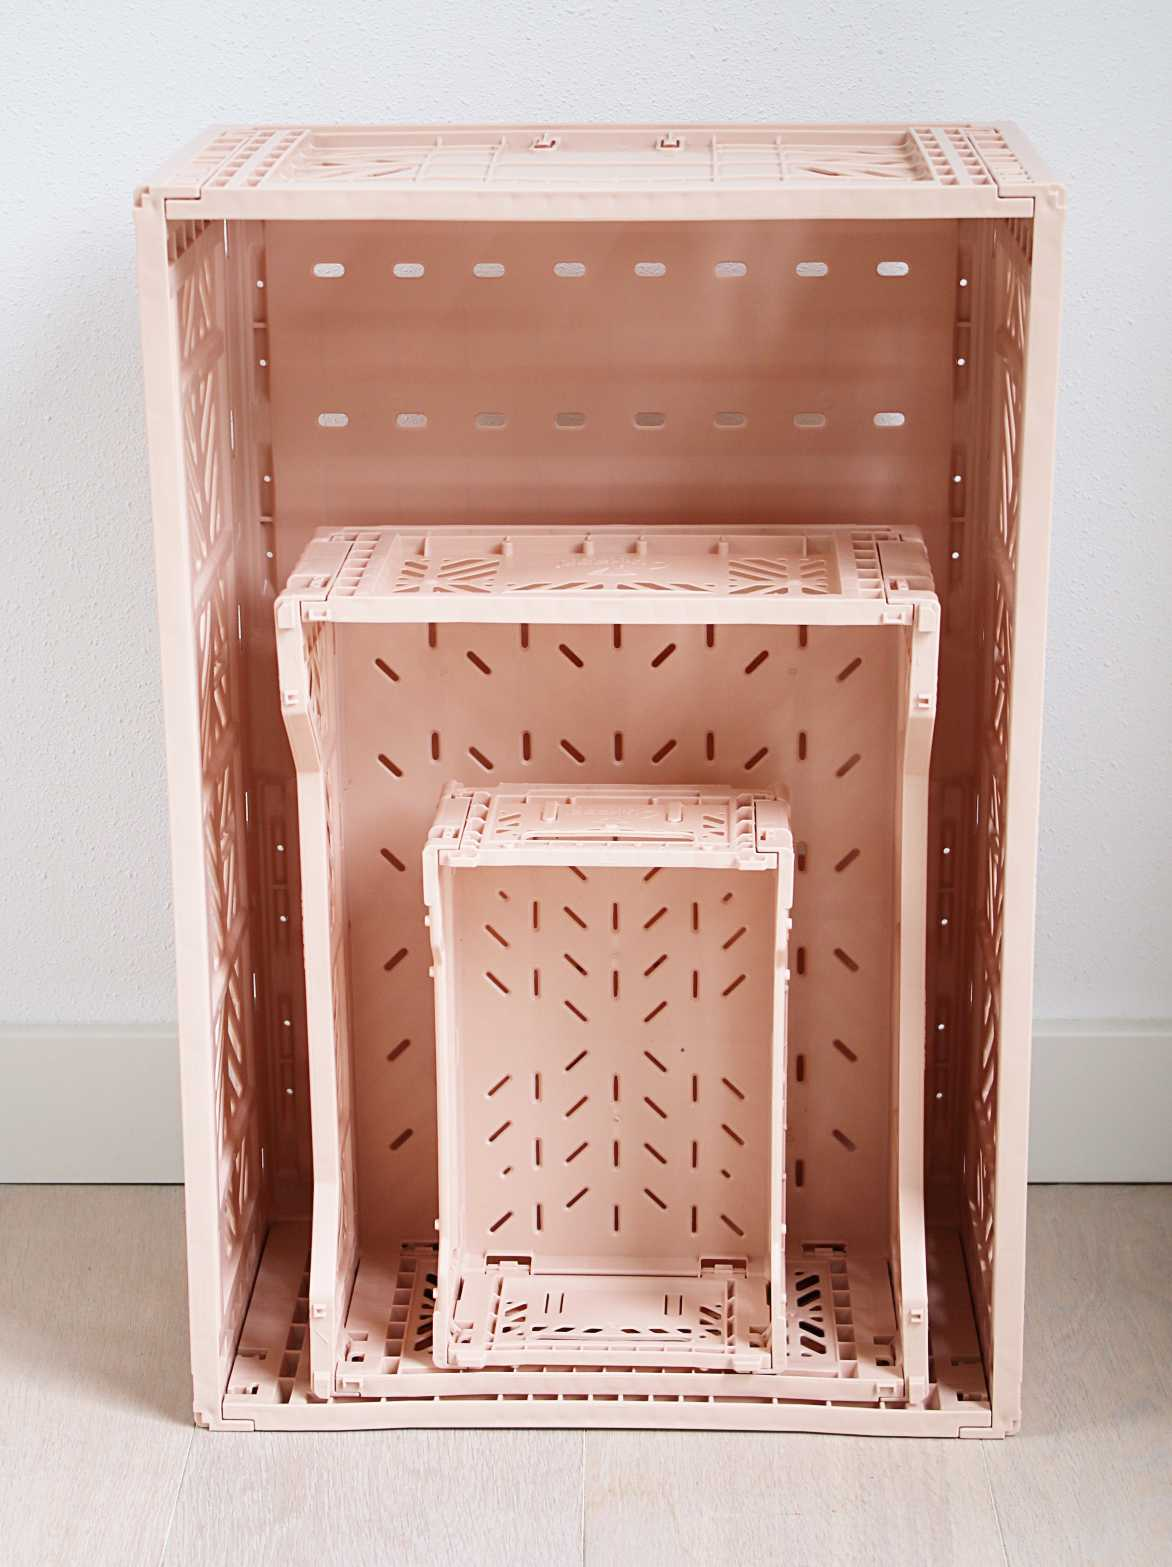 Folding Crate: Midi Stackable Storage Crate - Salmon Pink Folding Crates - Bon Tot